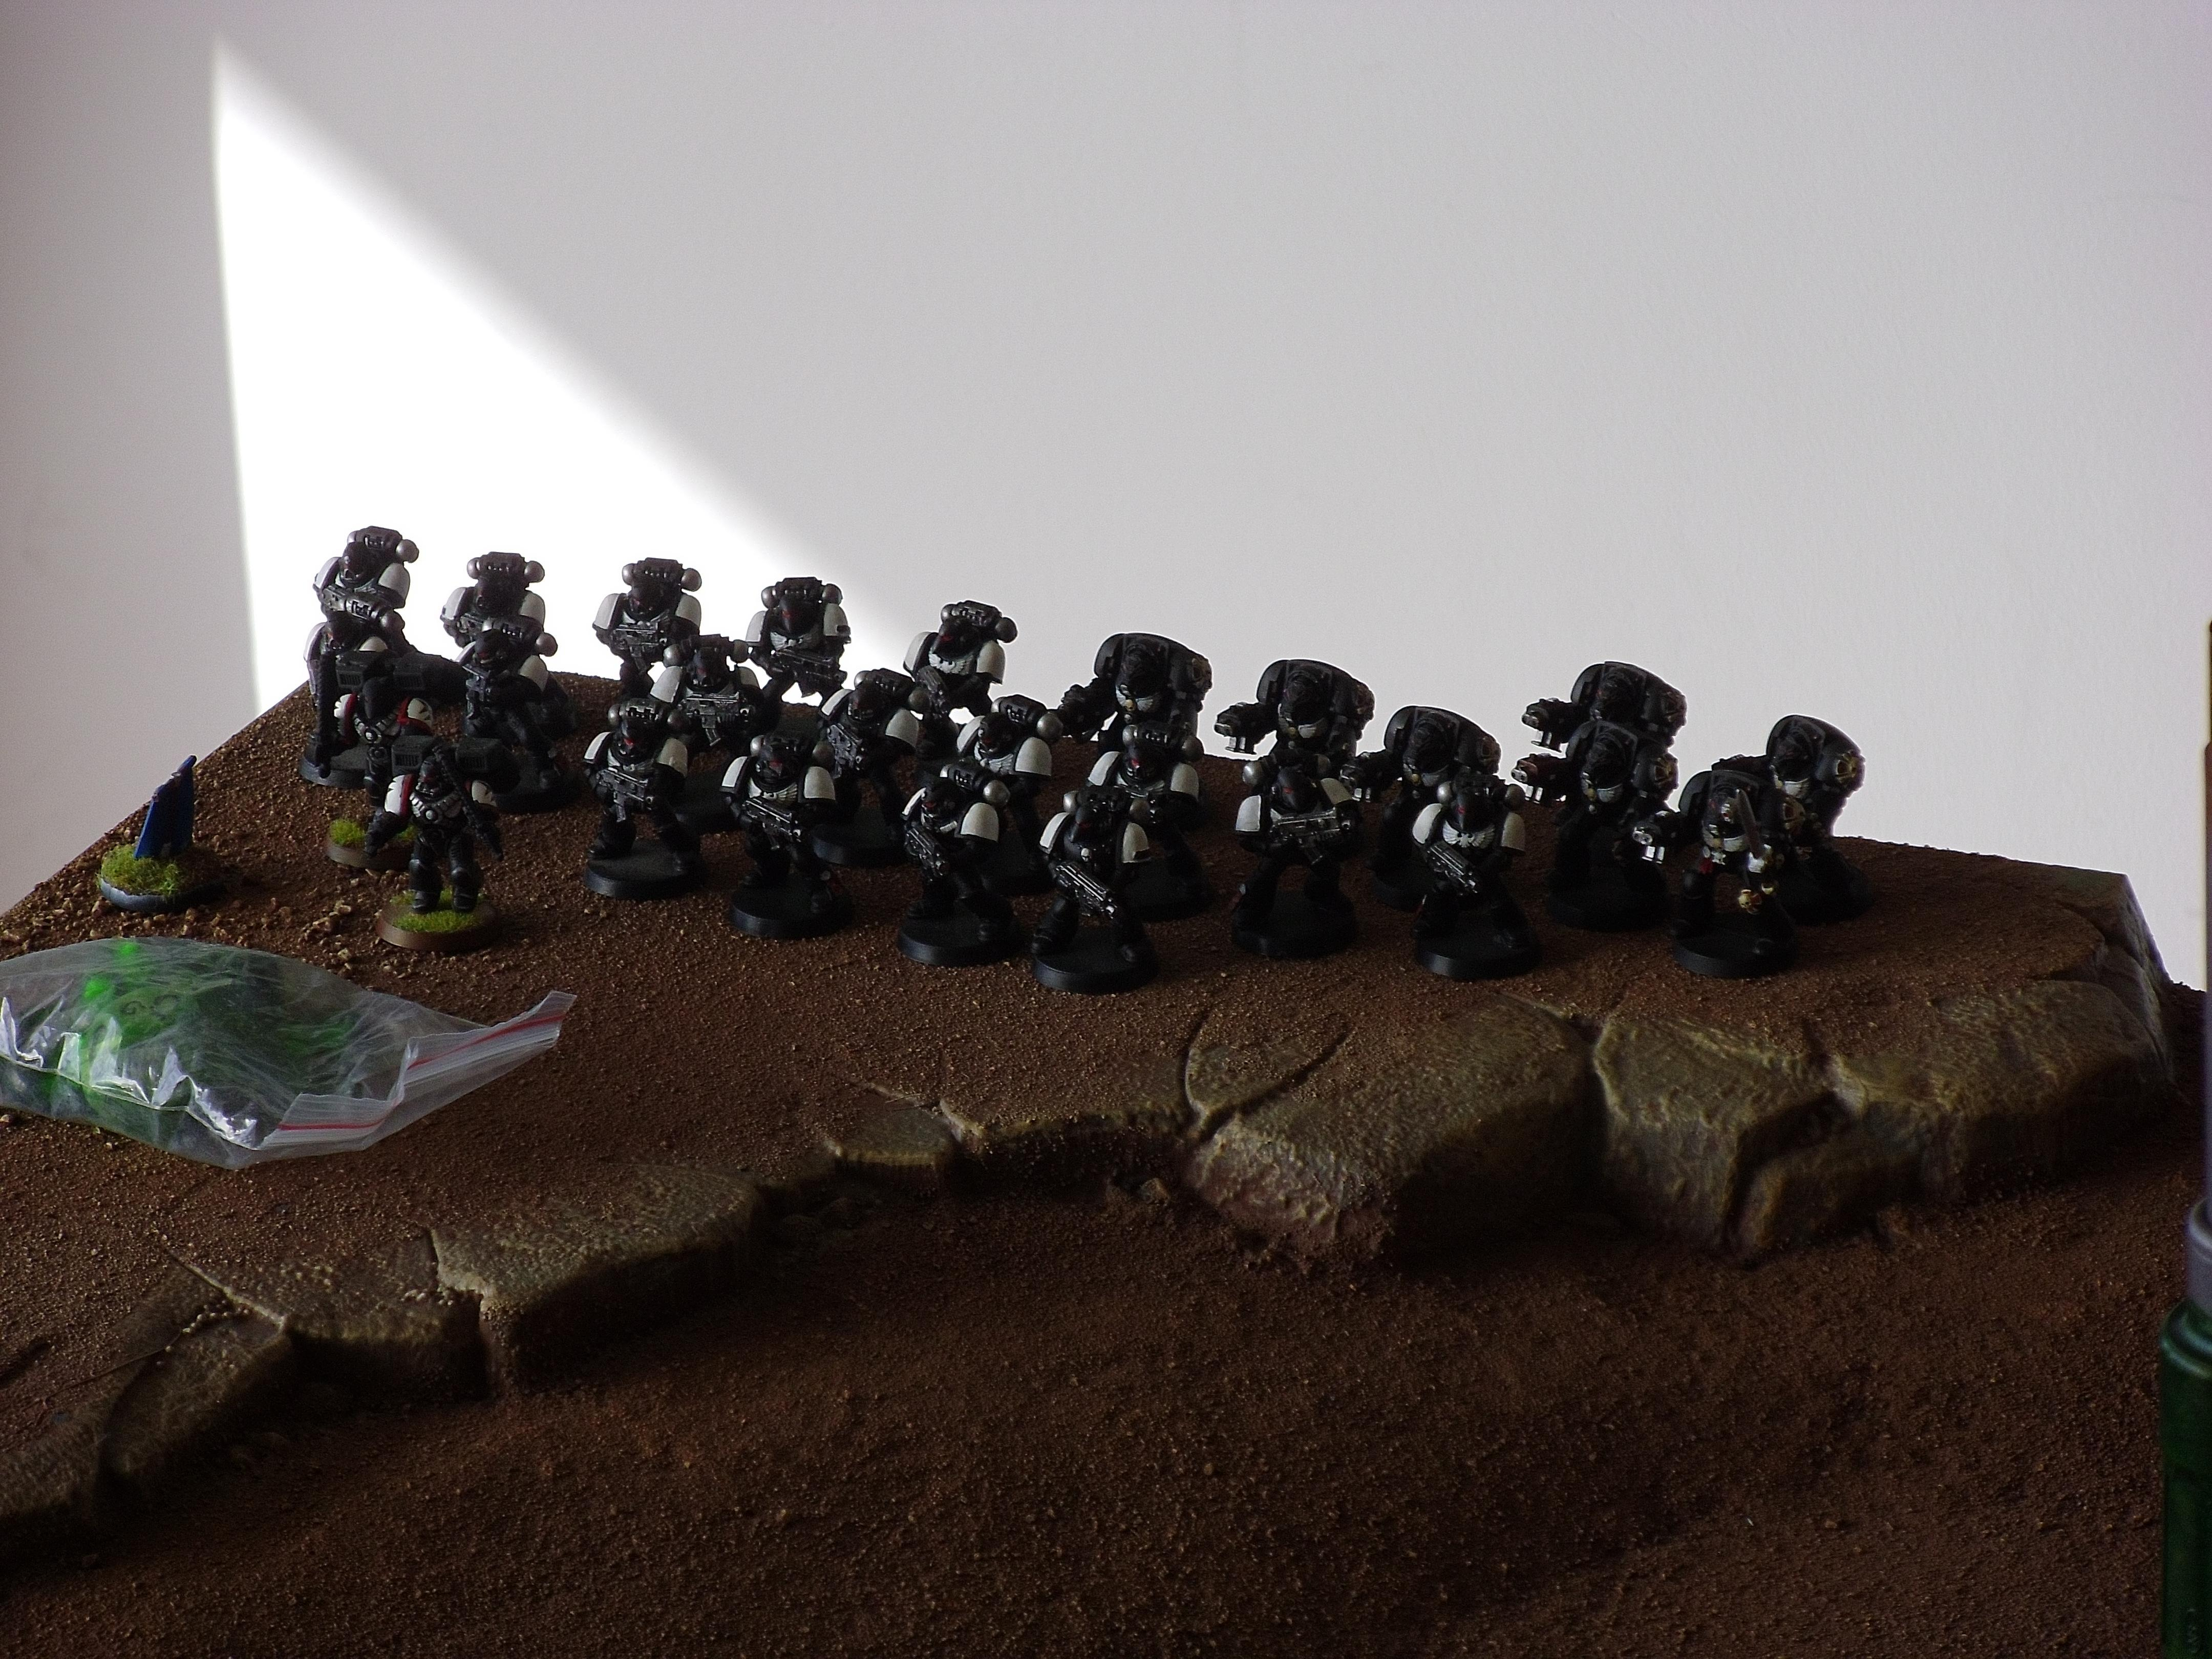 Battle Report, Black Templars, Dreadnought, Imperial Fists, Space Marines, Warhammer 40,000